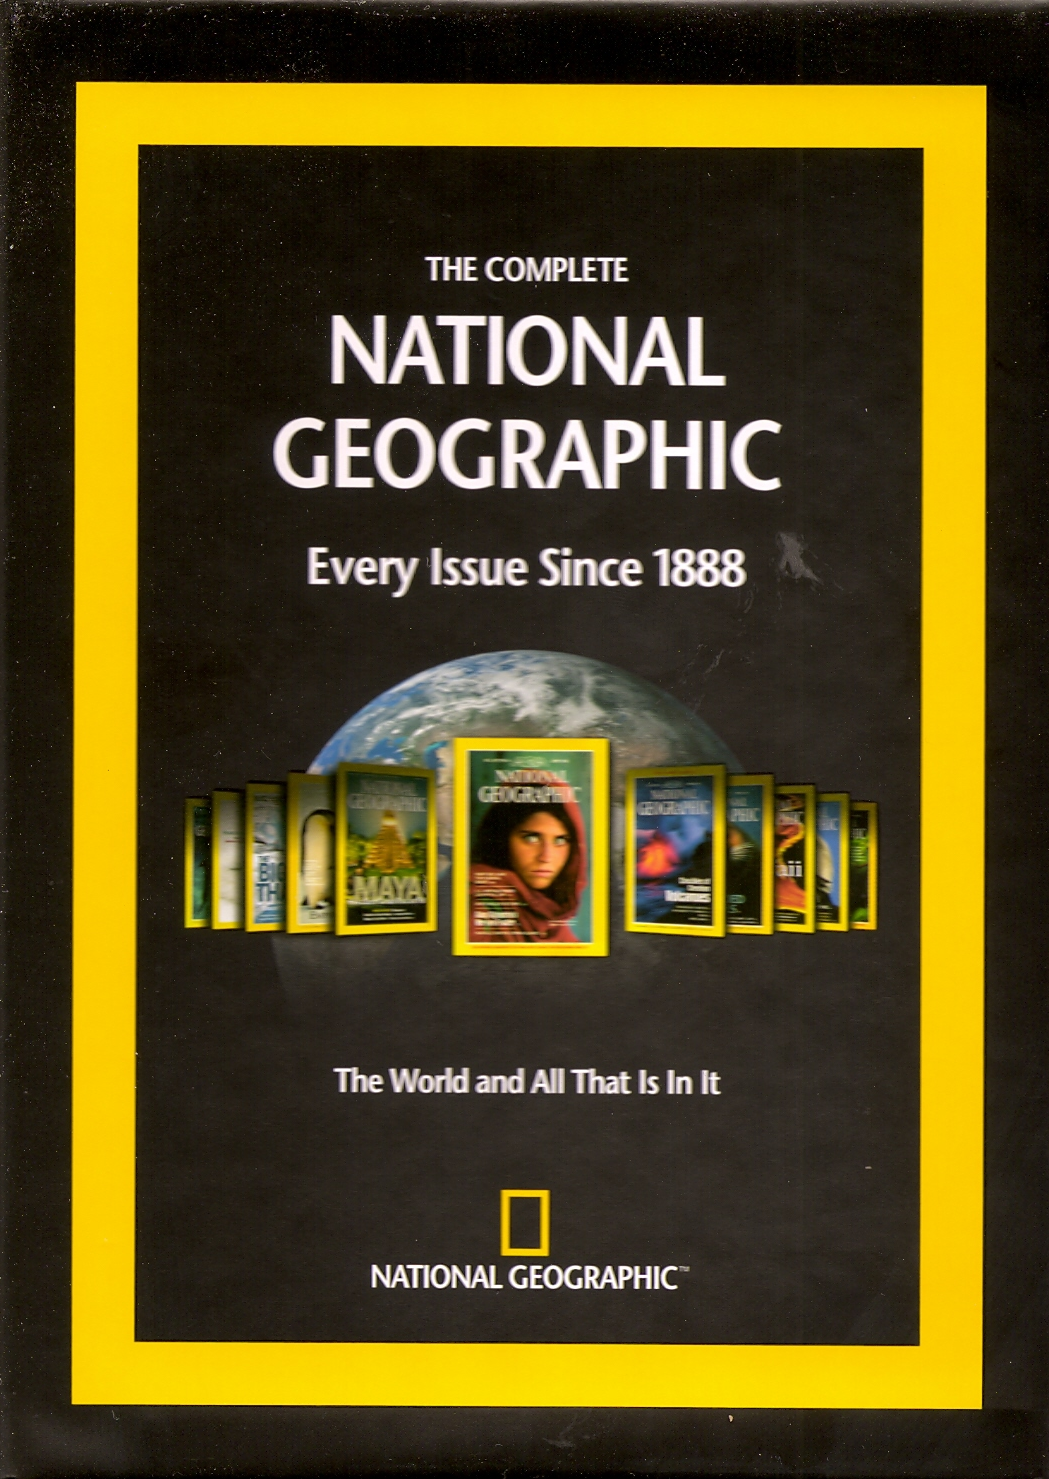 Share 2017 The Complete National Geographic